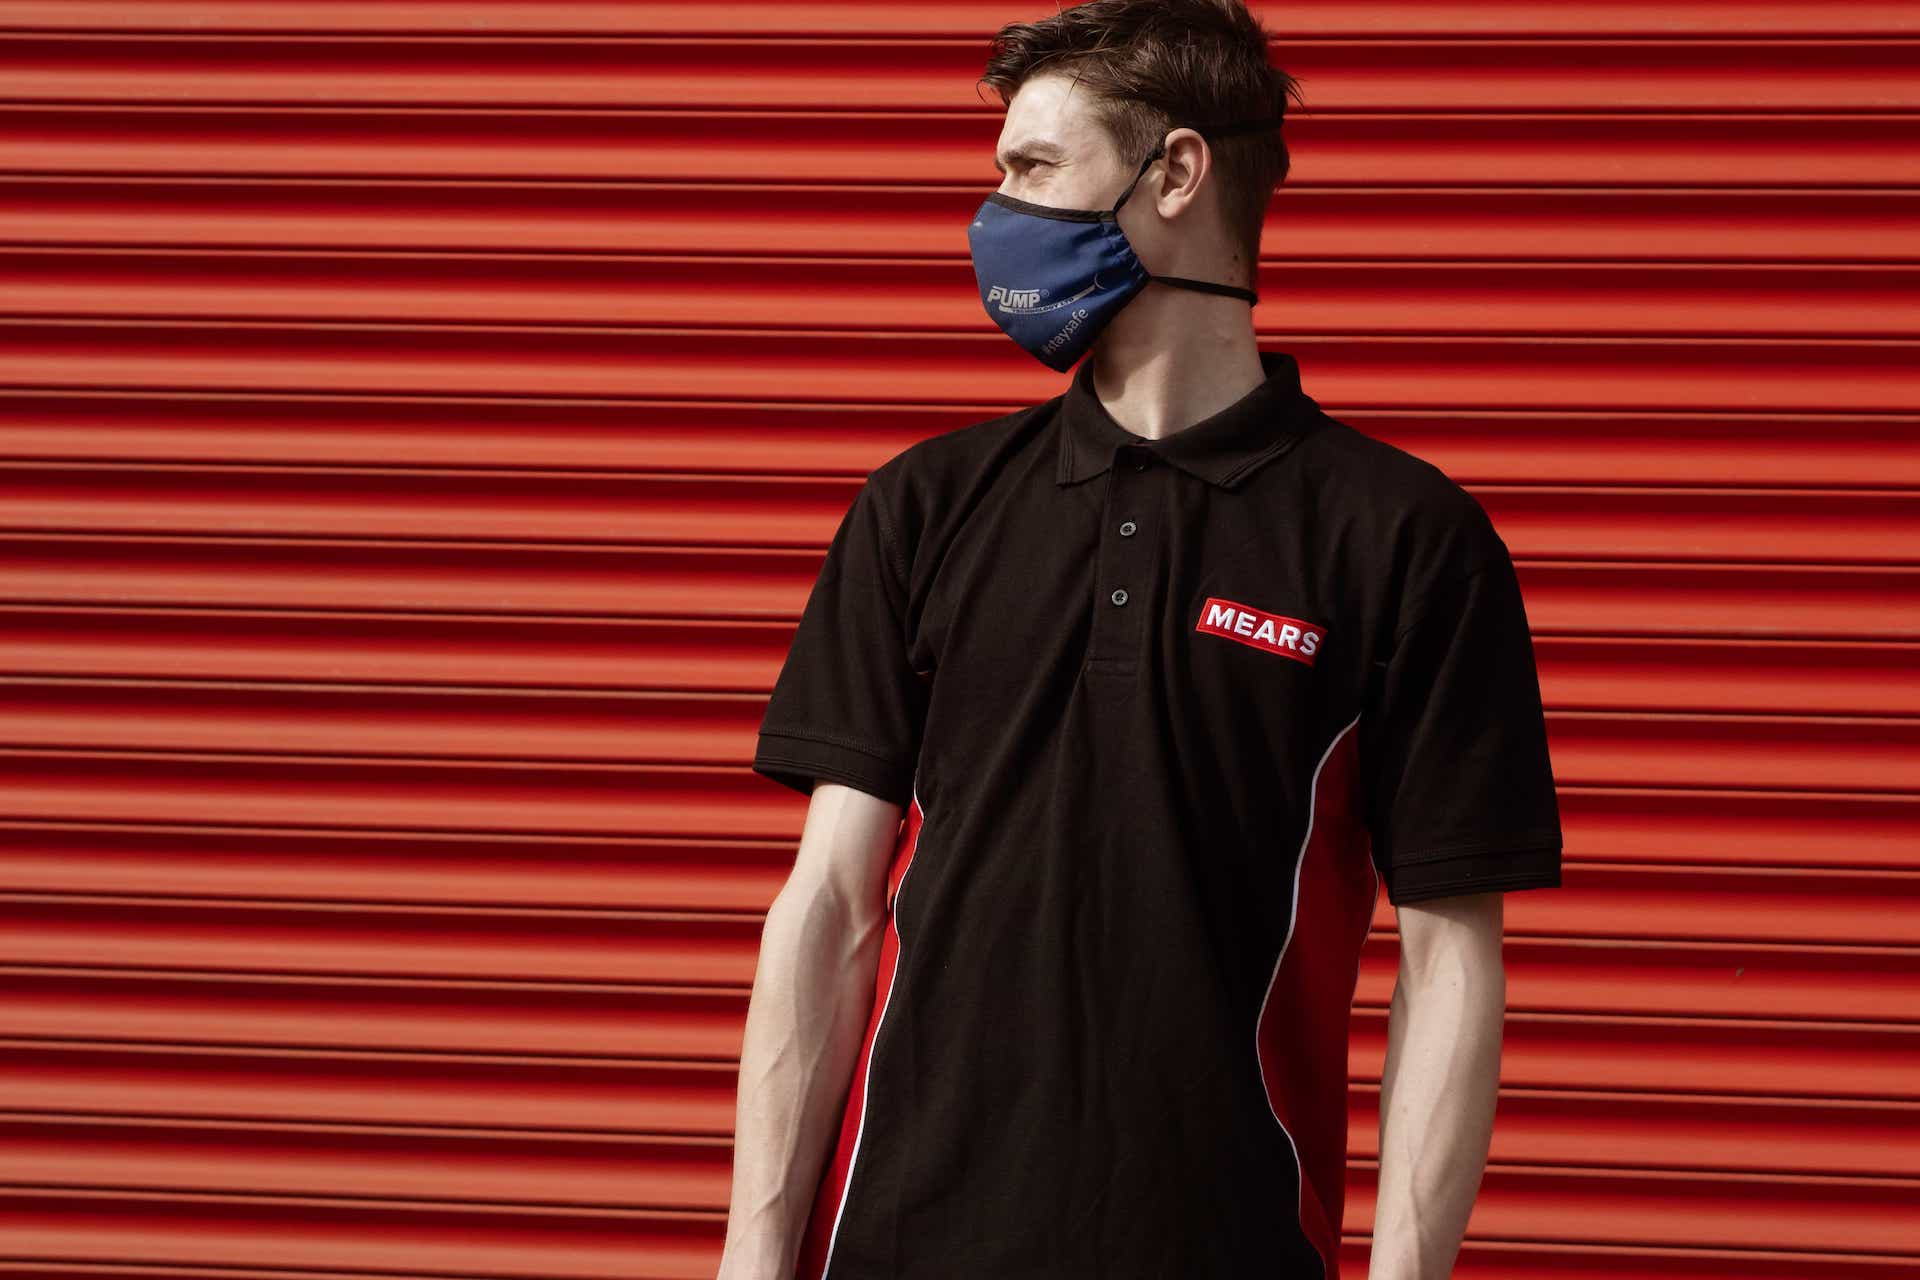 Mears colleague stood in front of a red shutter wearing a face mask